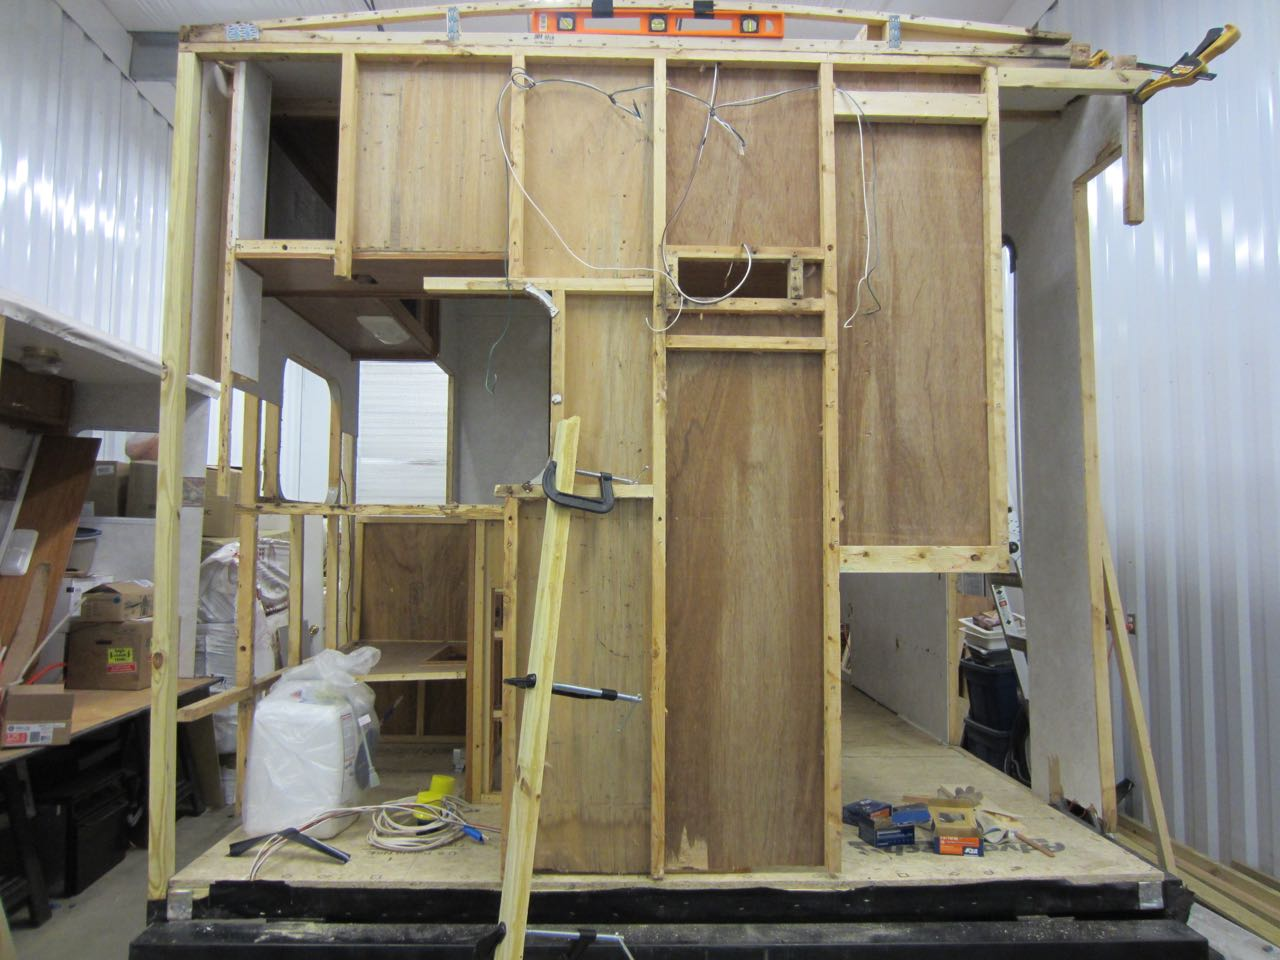 A new beam for the driver side of the trailer and the kitchen roof was installed.